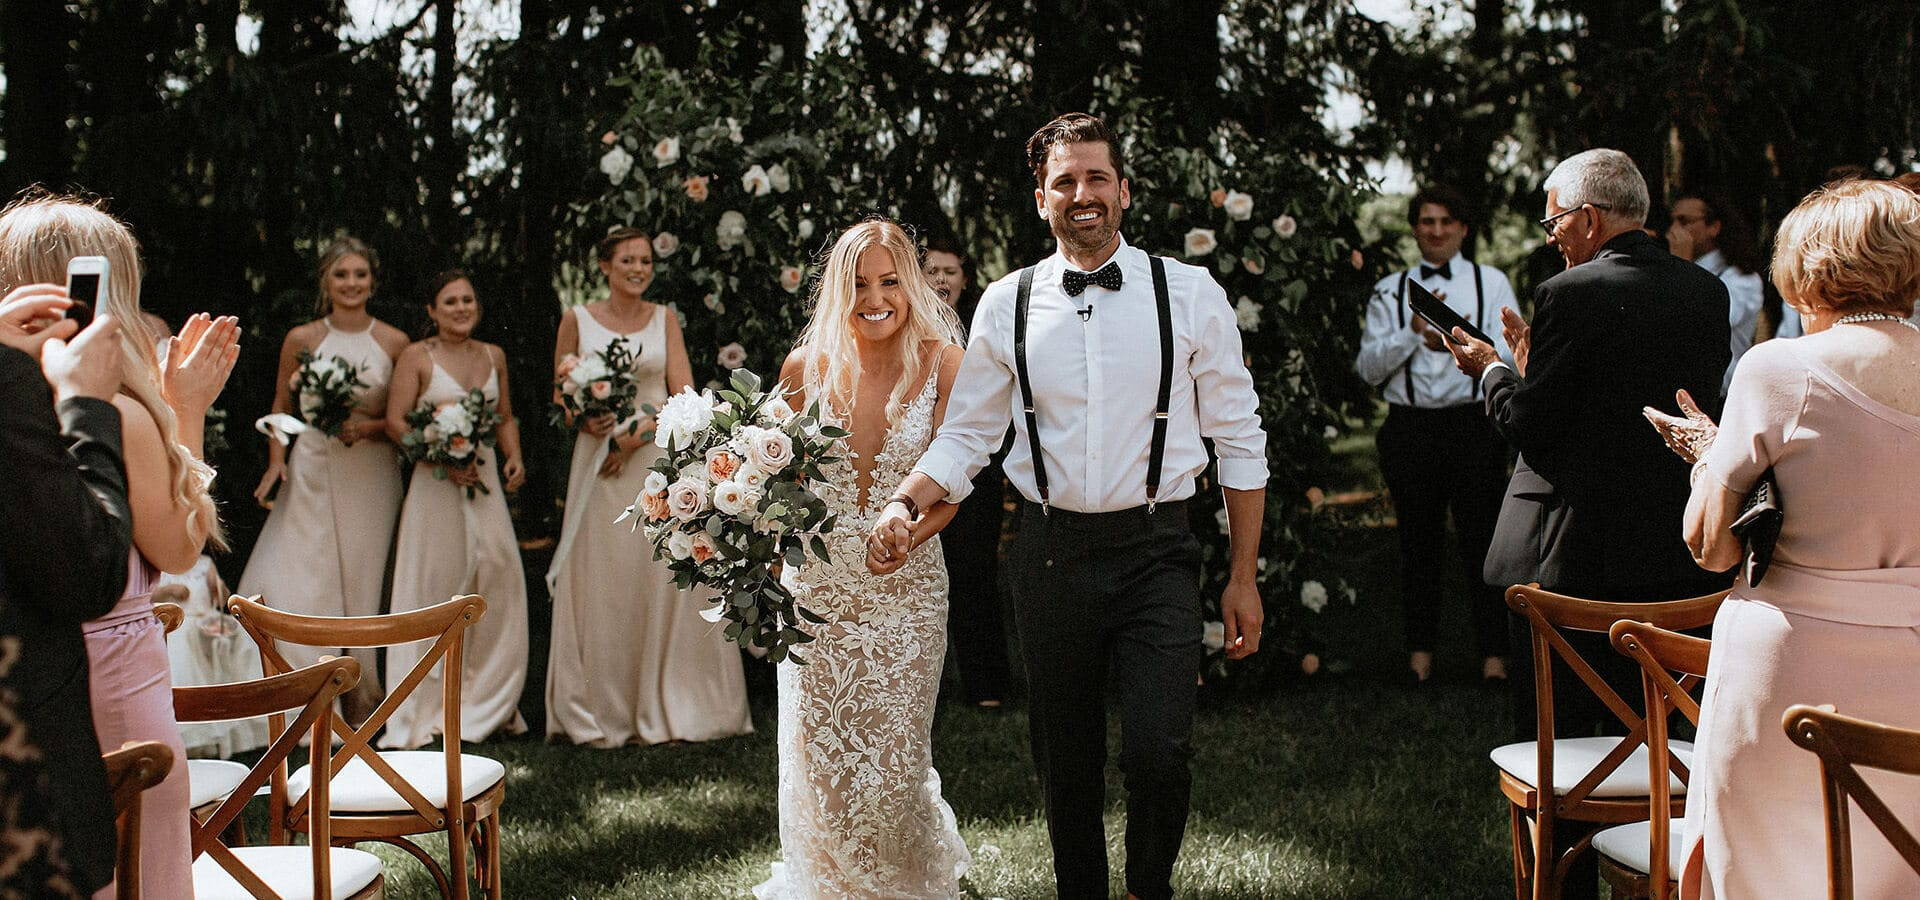 Hero image for Sarah and Andrew's Country Chic Wedding at Cambium Farms